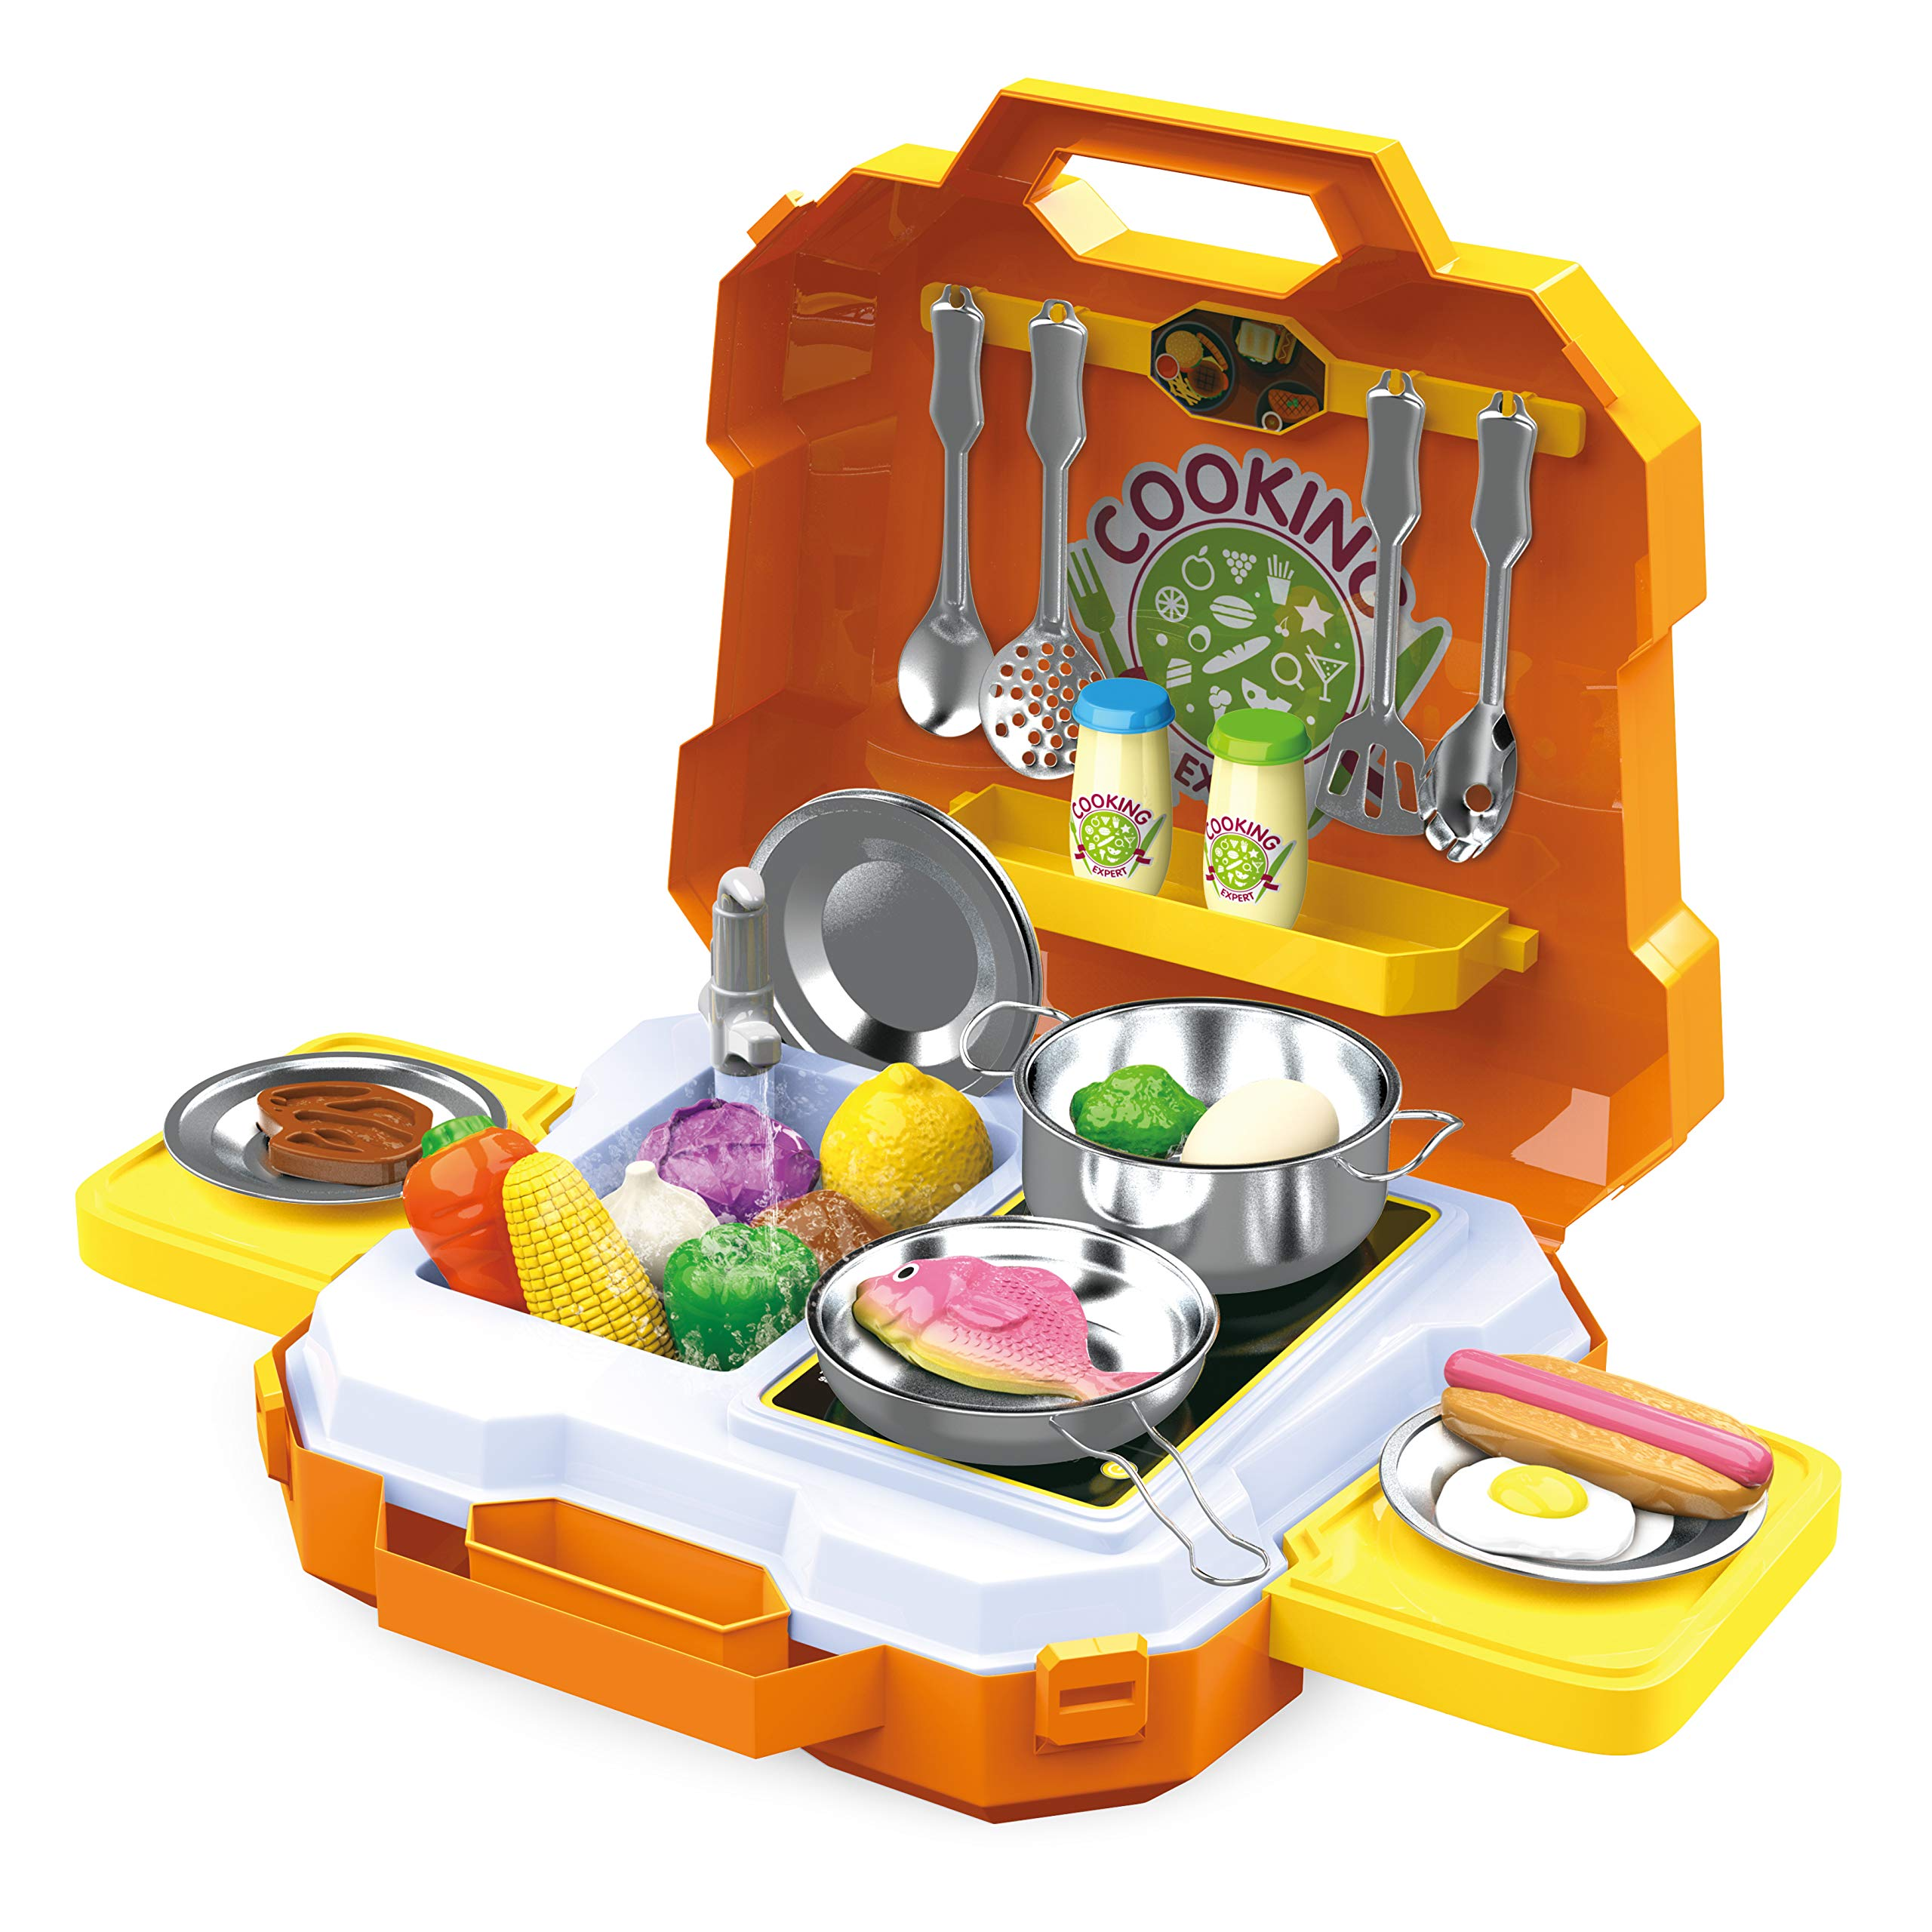 JOYIN 35 Pieces Kids Pretend Play Kitchen Toy Kit with Cookware Utensil Toys, Play Food, Pots and Pans for Kids, School Classroom Rewards and Chef Role Play by JOYIN